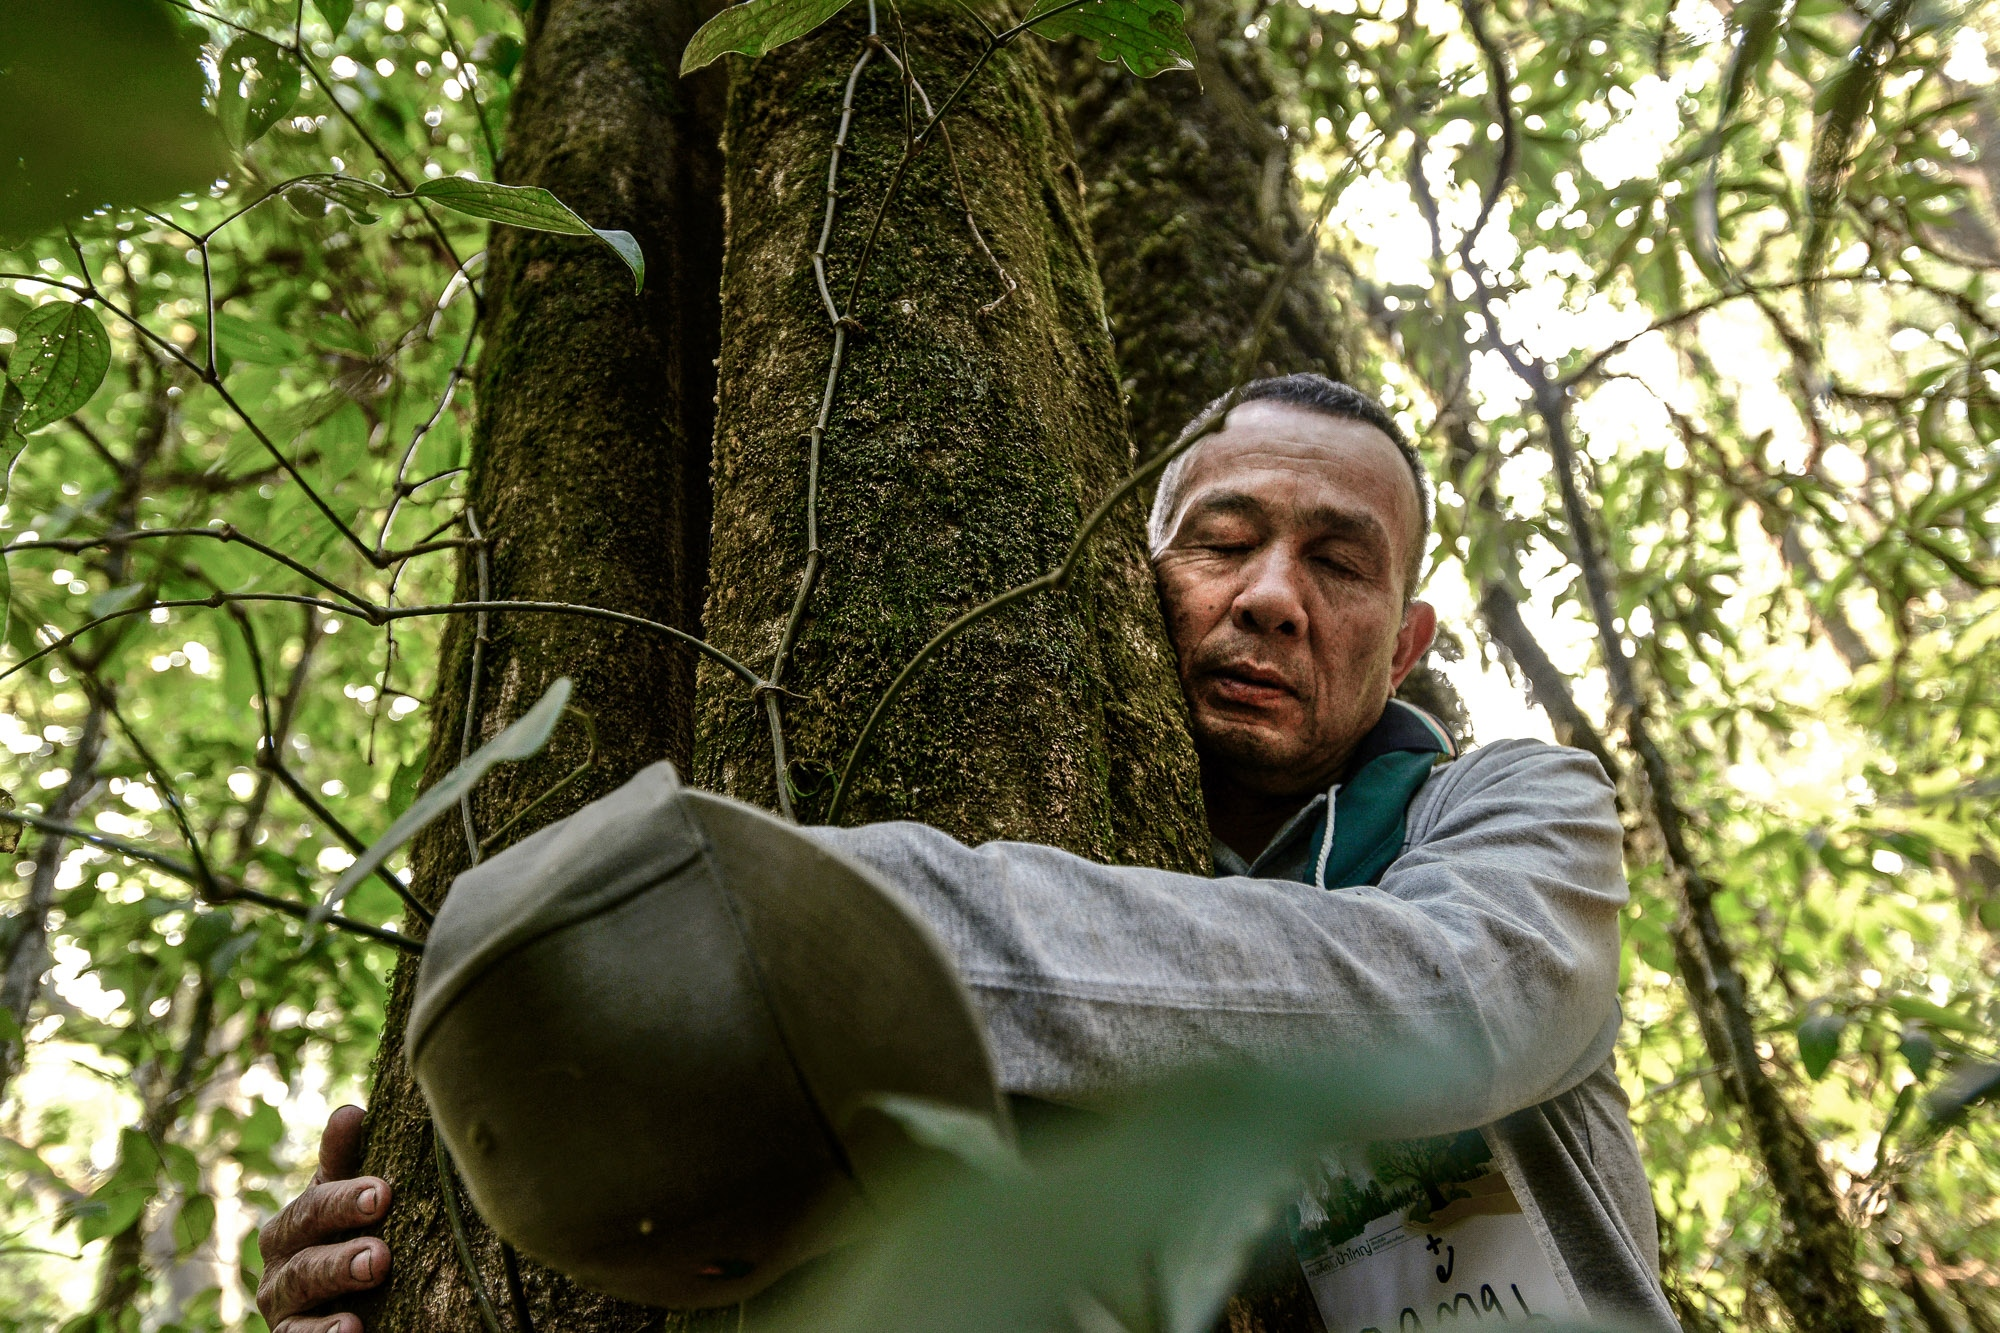 When Ton Maneetor, a senior activist was young, he was shot in his left eye whilst tracking a forest poacher. After losing his eye, he realised the multiple sustainable ways of solving problems and protecting the forest from encroachment should initially come from his understanding, knowledge and experience of the local area despite being partially impaired. During a smoggy season. Ton's children are taught to have a perception of being in harmony with nature and the ideology has been passed down through many generations ensuring consistency throughout. Doi Inthanon, Chiang Mai, Thailand.